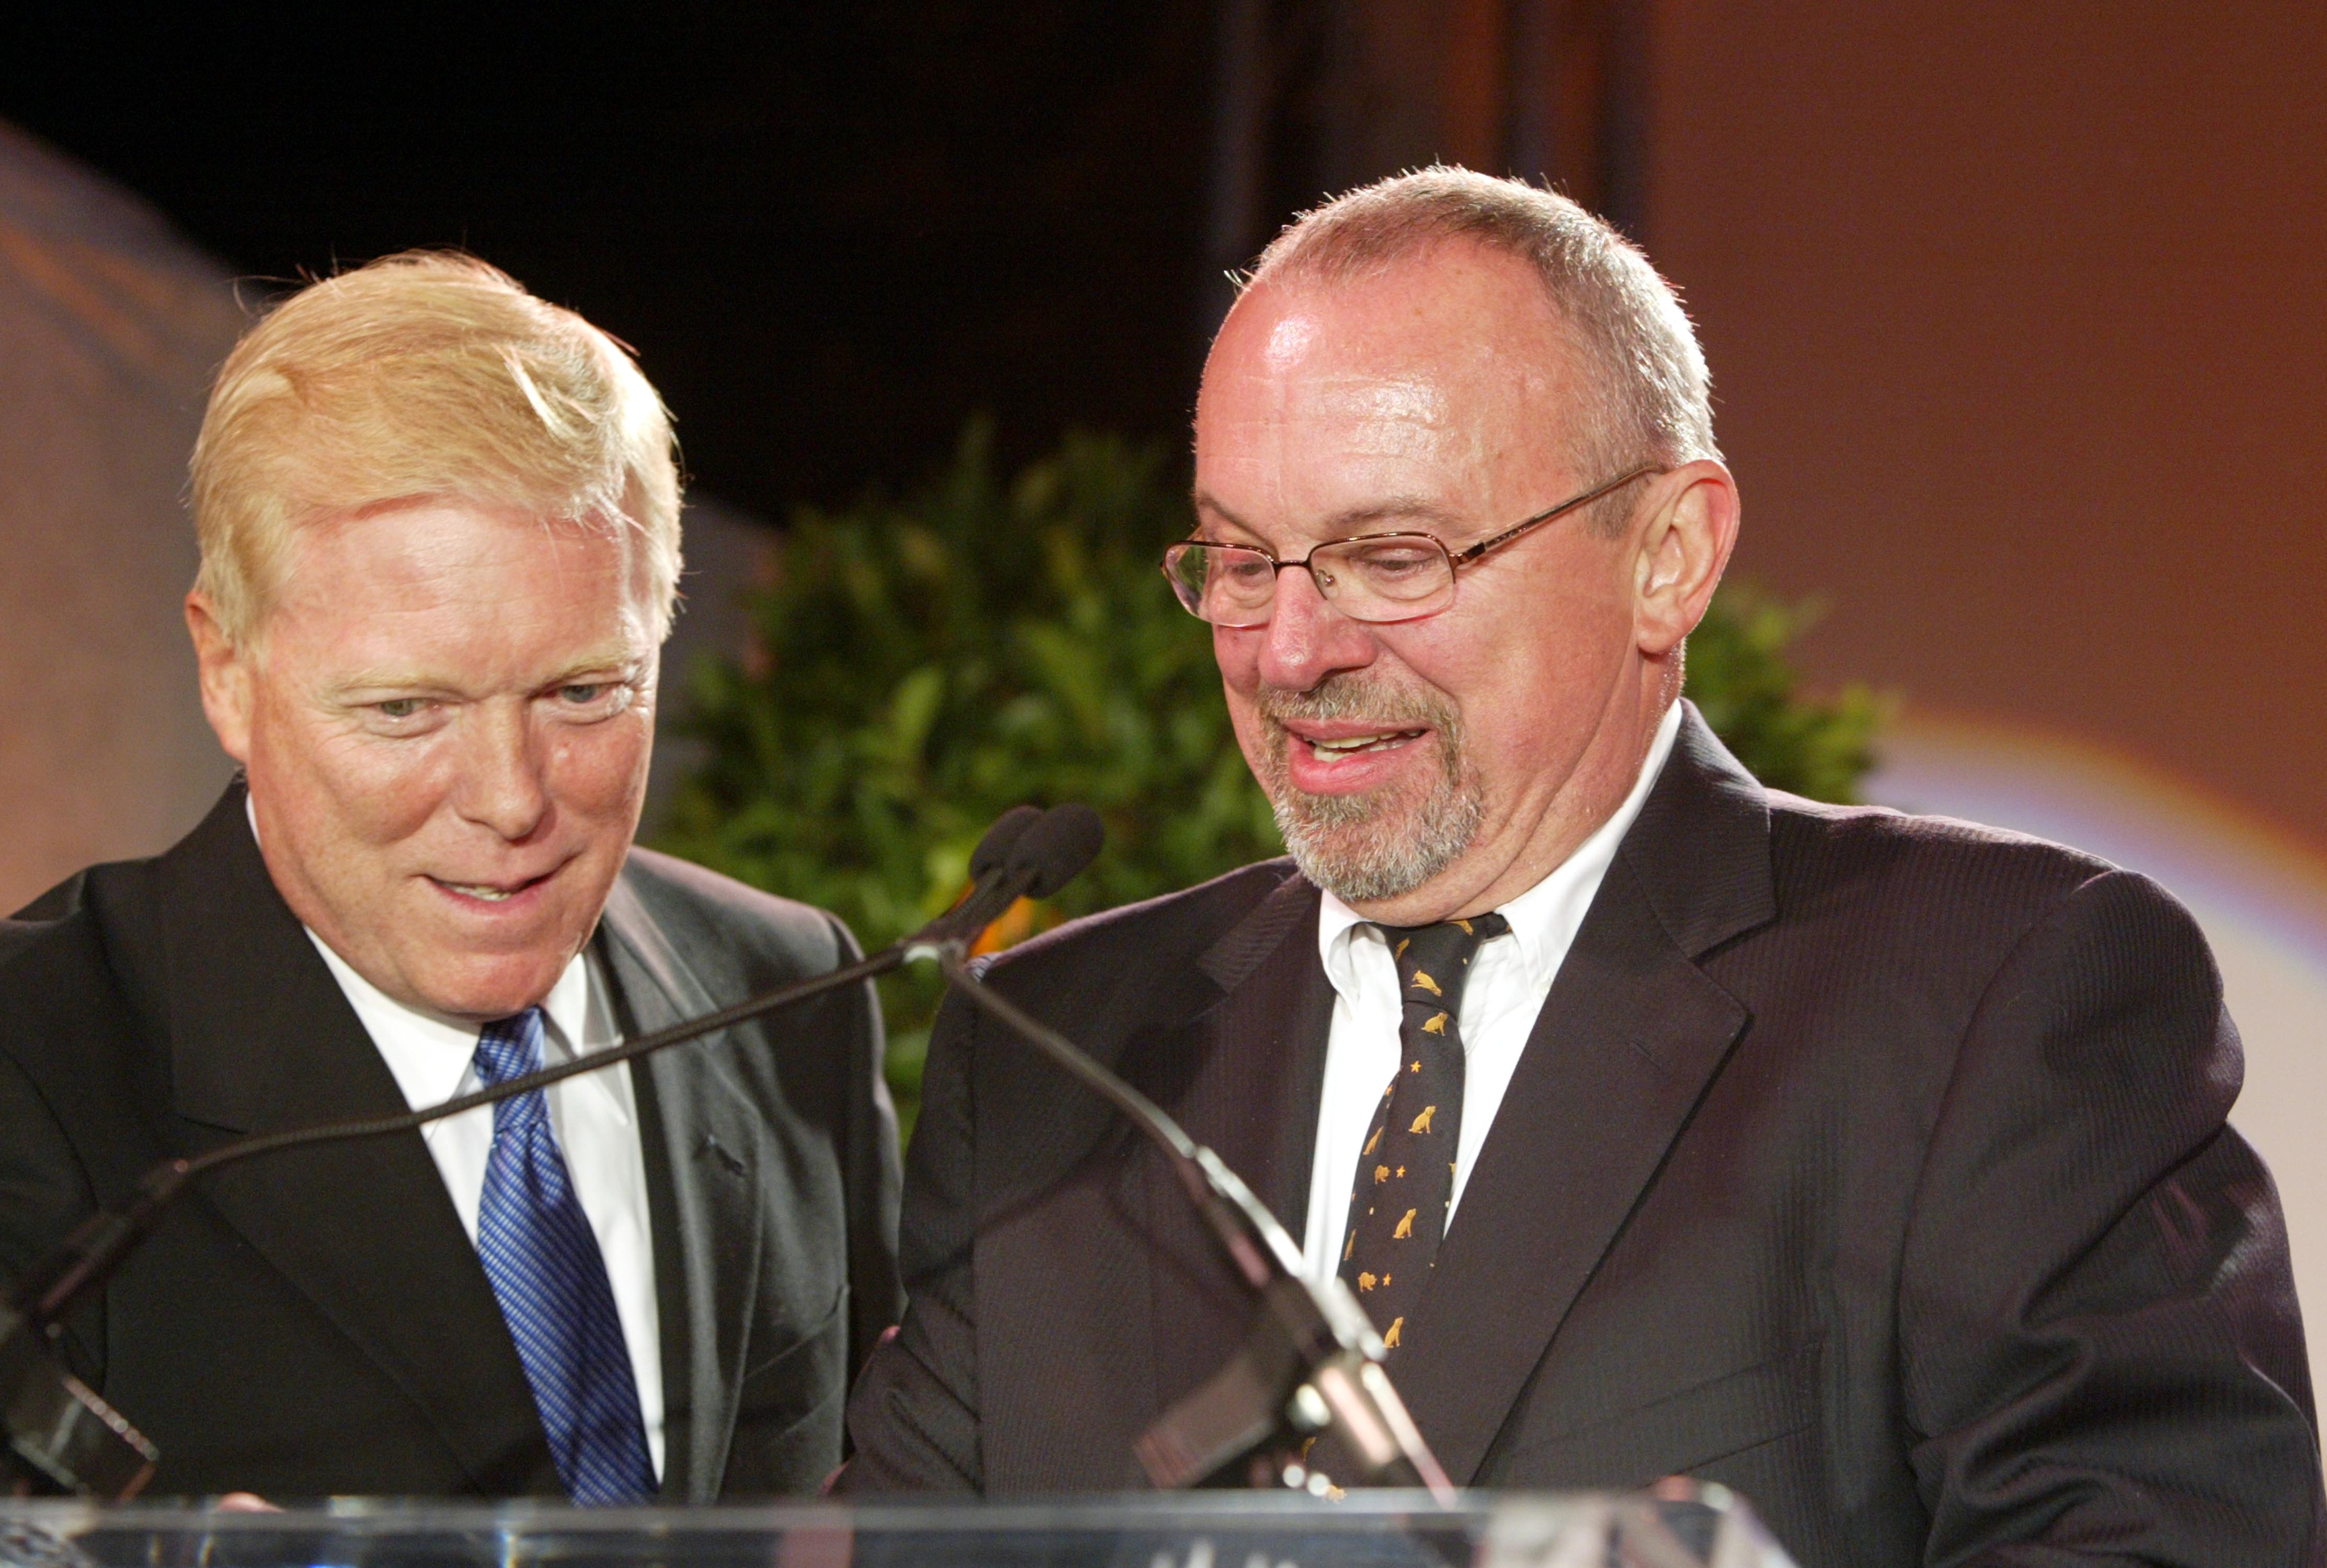 Congressman Richard Gephardt (L) with Blake Byrne on stage at Project Angel Food's 11th Annual Angel Awards Gala held at Project Angel Food Headquarters. Photo: Getty Images/GlobalImagesUkraine